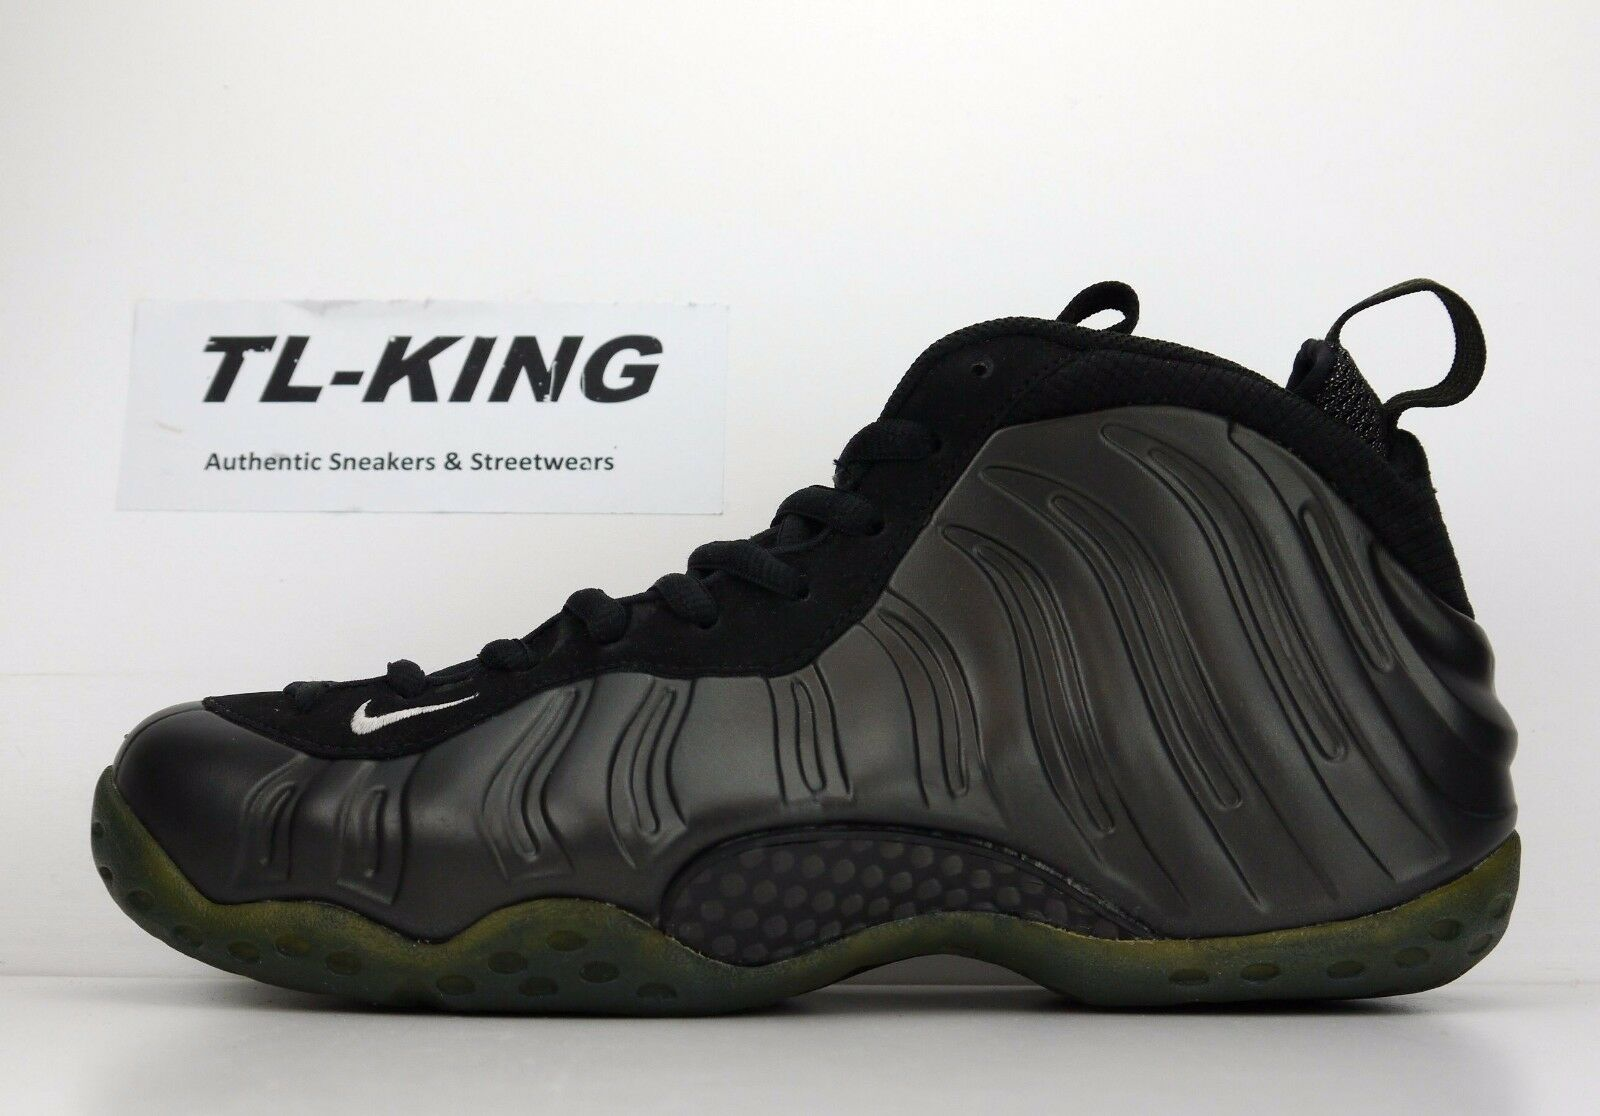 2008 Nike Air Foamposite One Dark Army HOH House Of Hoops 314996 031 8.5 USED